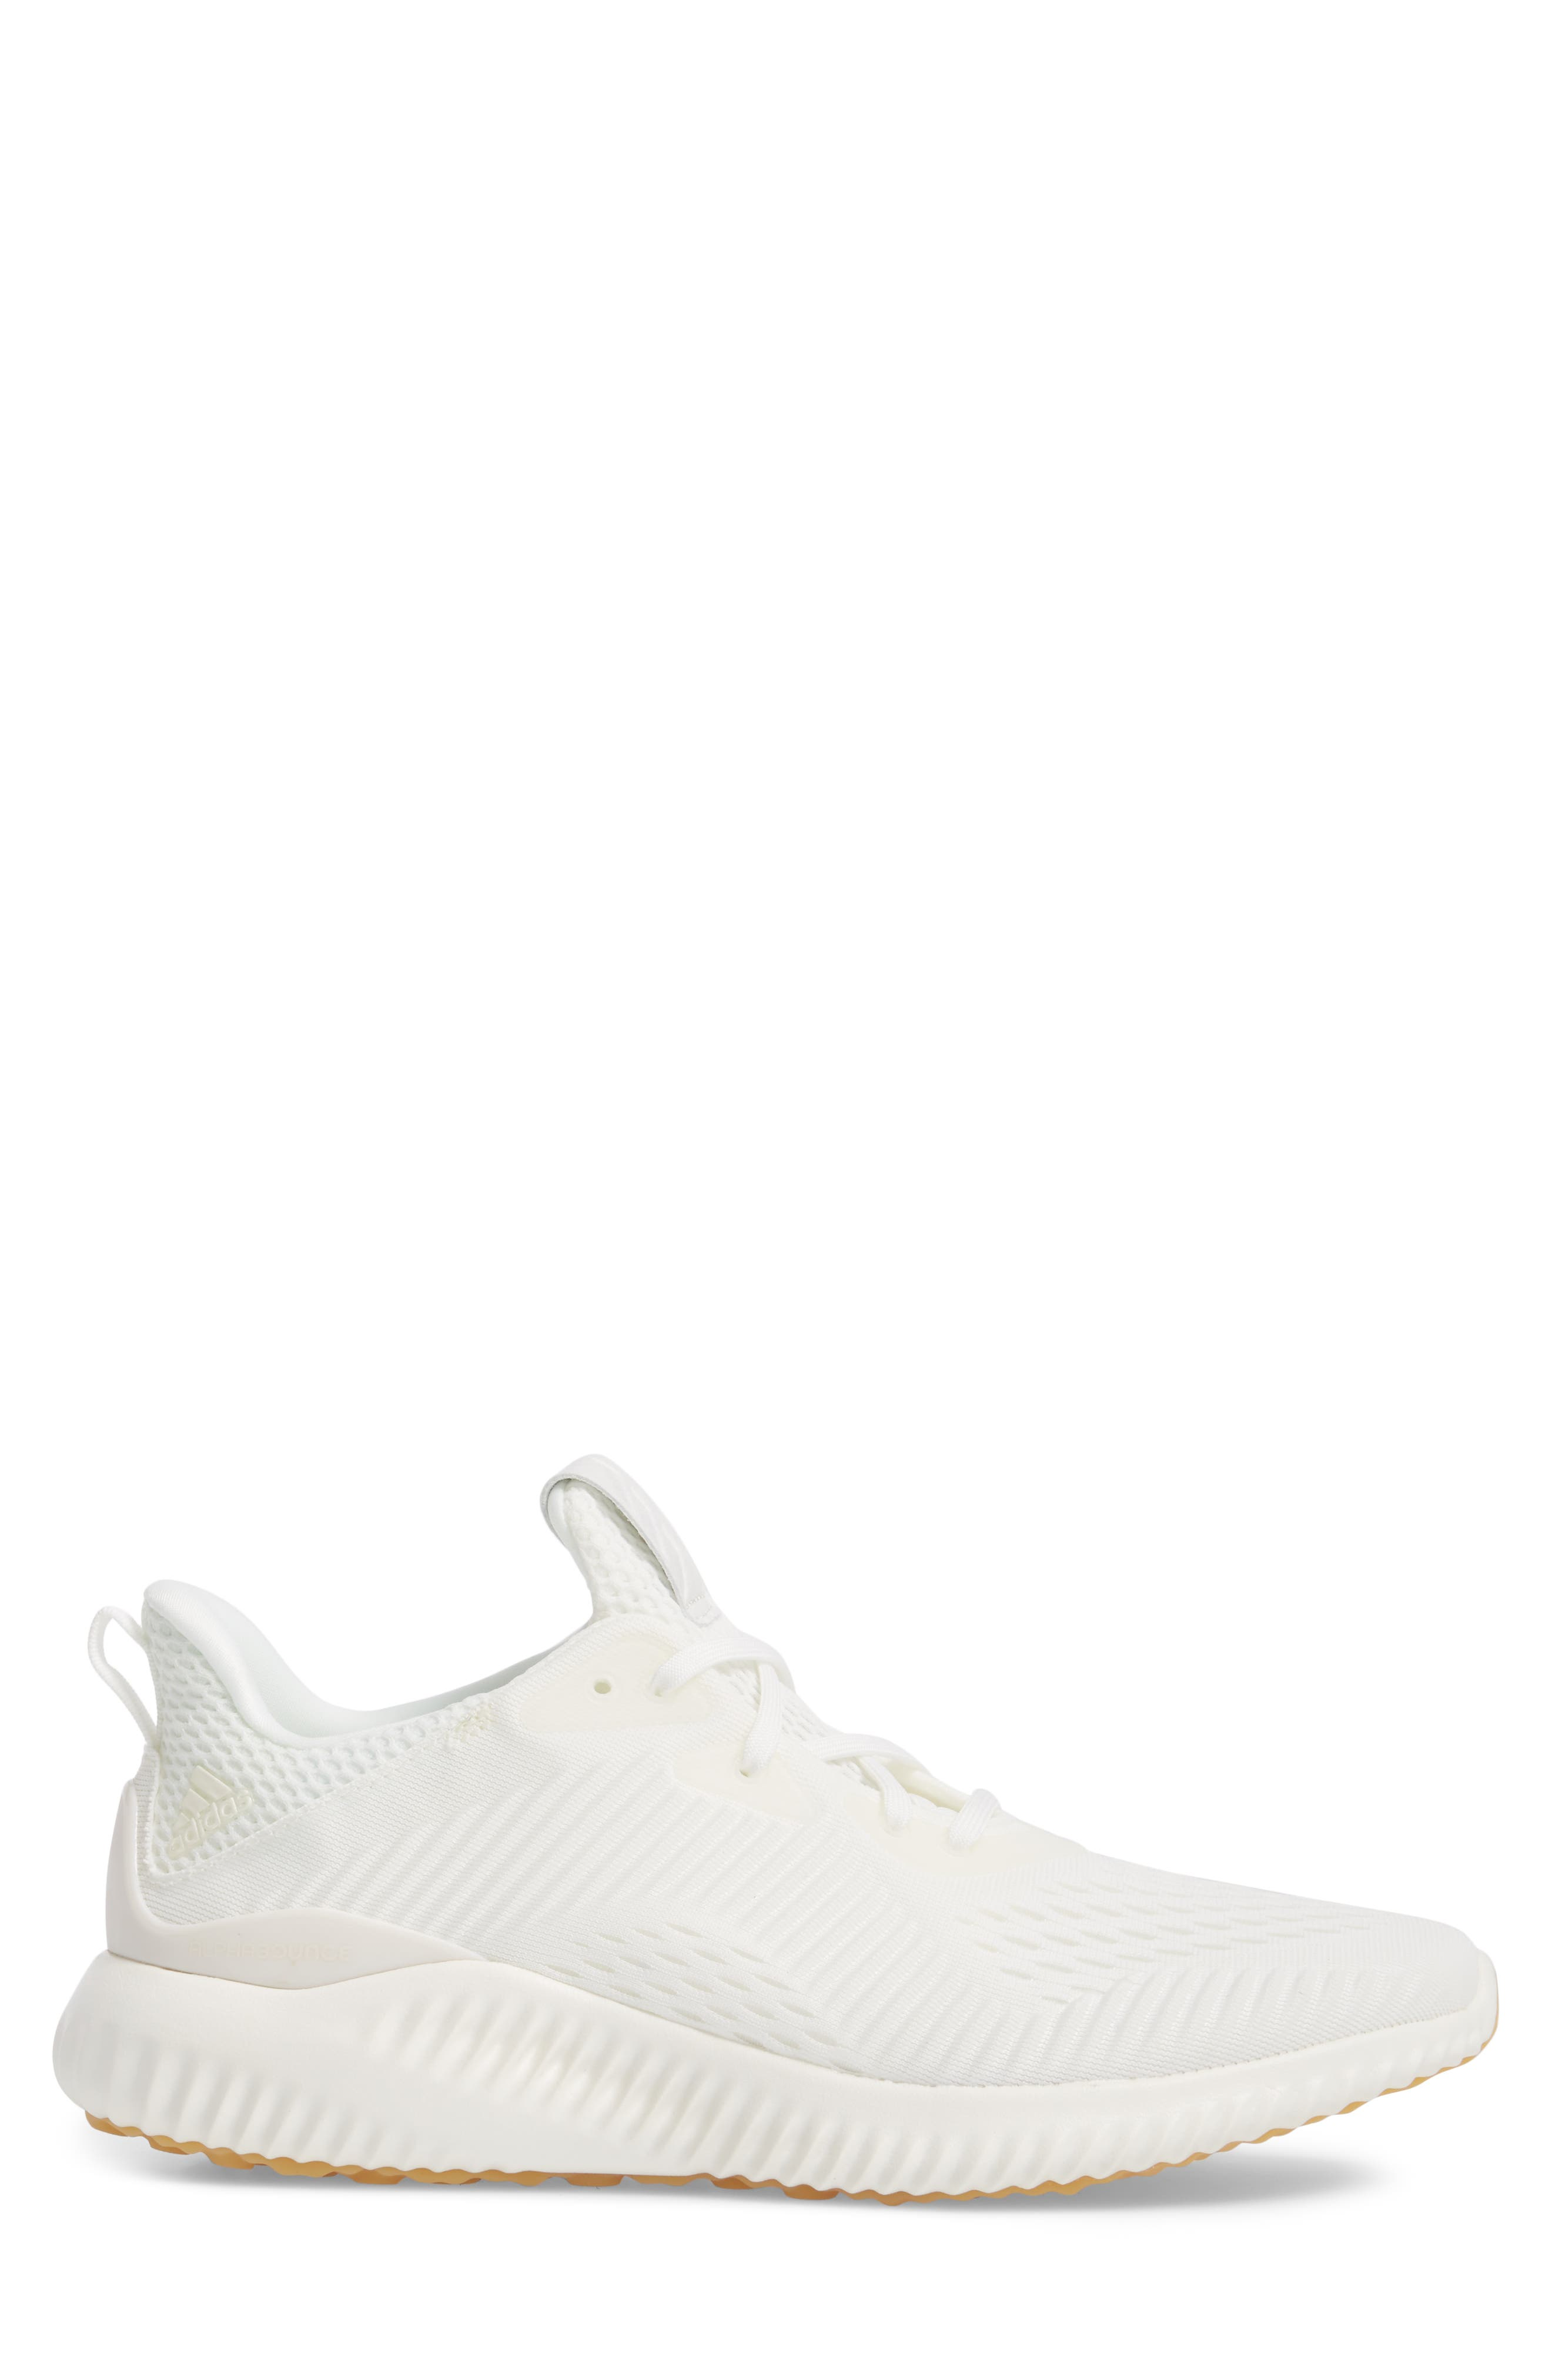 AlphaBounce EM Undye Running Shoe,                             Alternate thumbnail 3, color,                             Non Dyed/ Grey